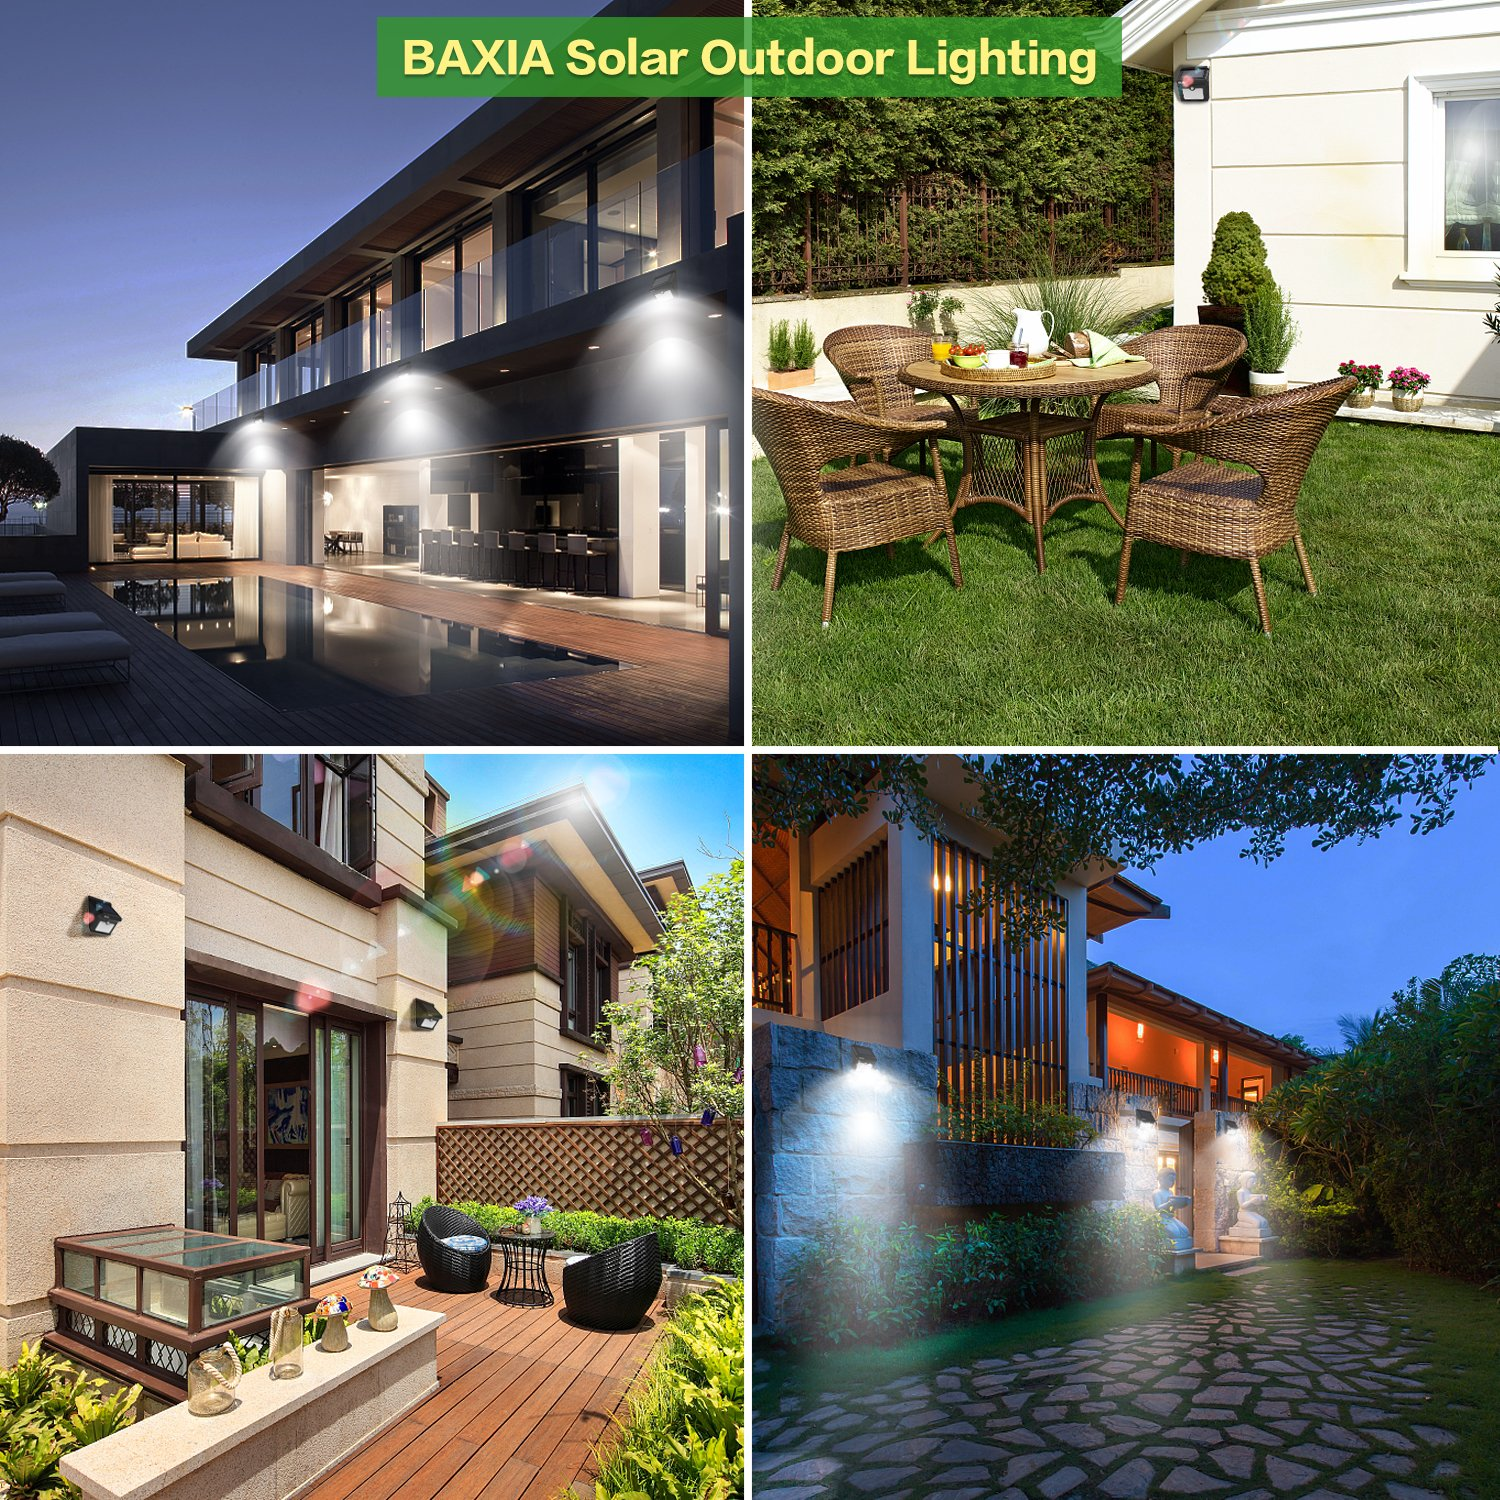 4 Packs Wall,Driveway Yard Door Patio Garden Solar Lights Outdoor,Solar Motion Lights 400LM,BAXIA TECHNOLOGY Waterproof Wireless Bright 28 LED Motion Sensor Security Light for Outdoor Gate